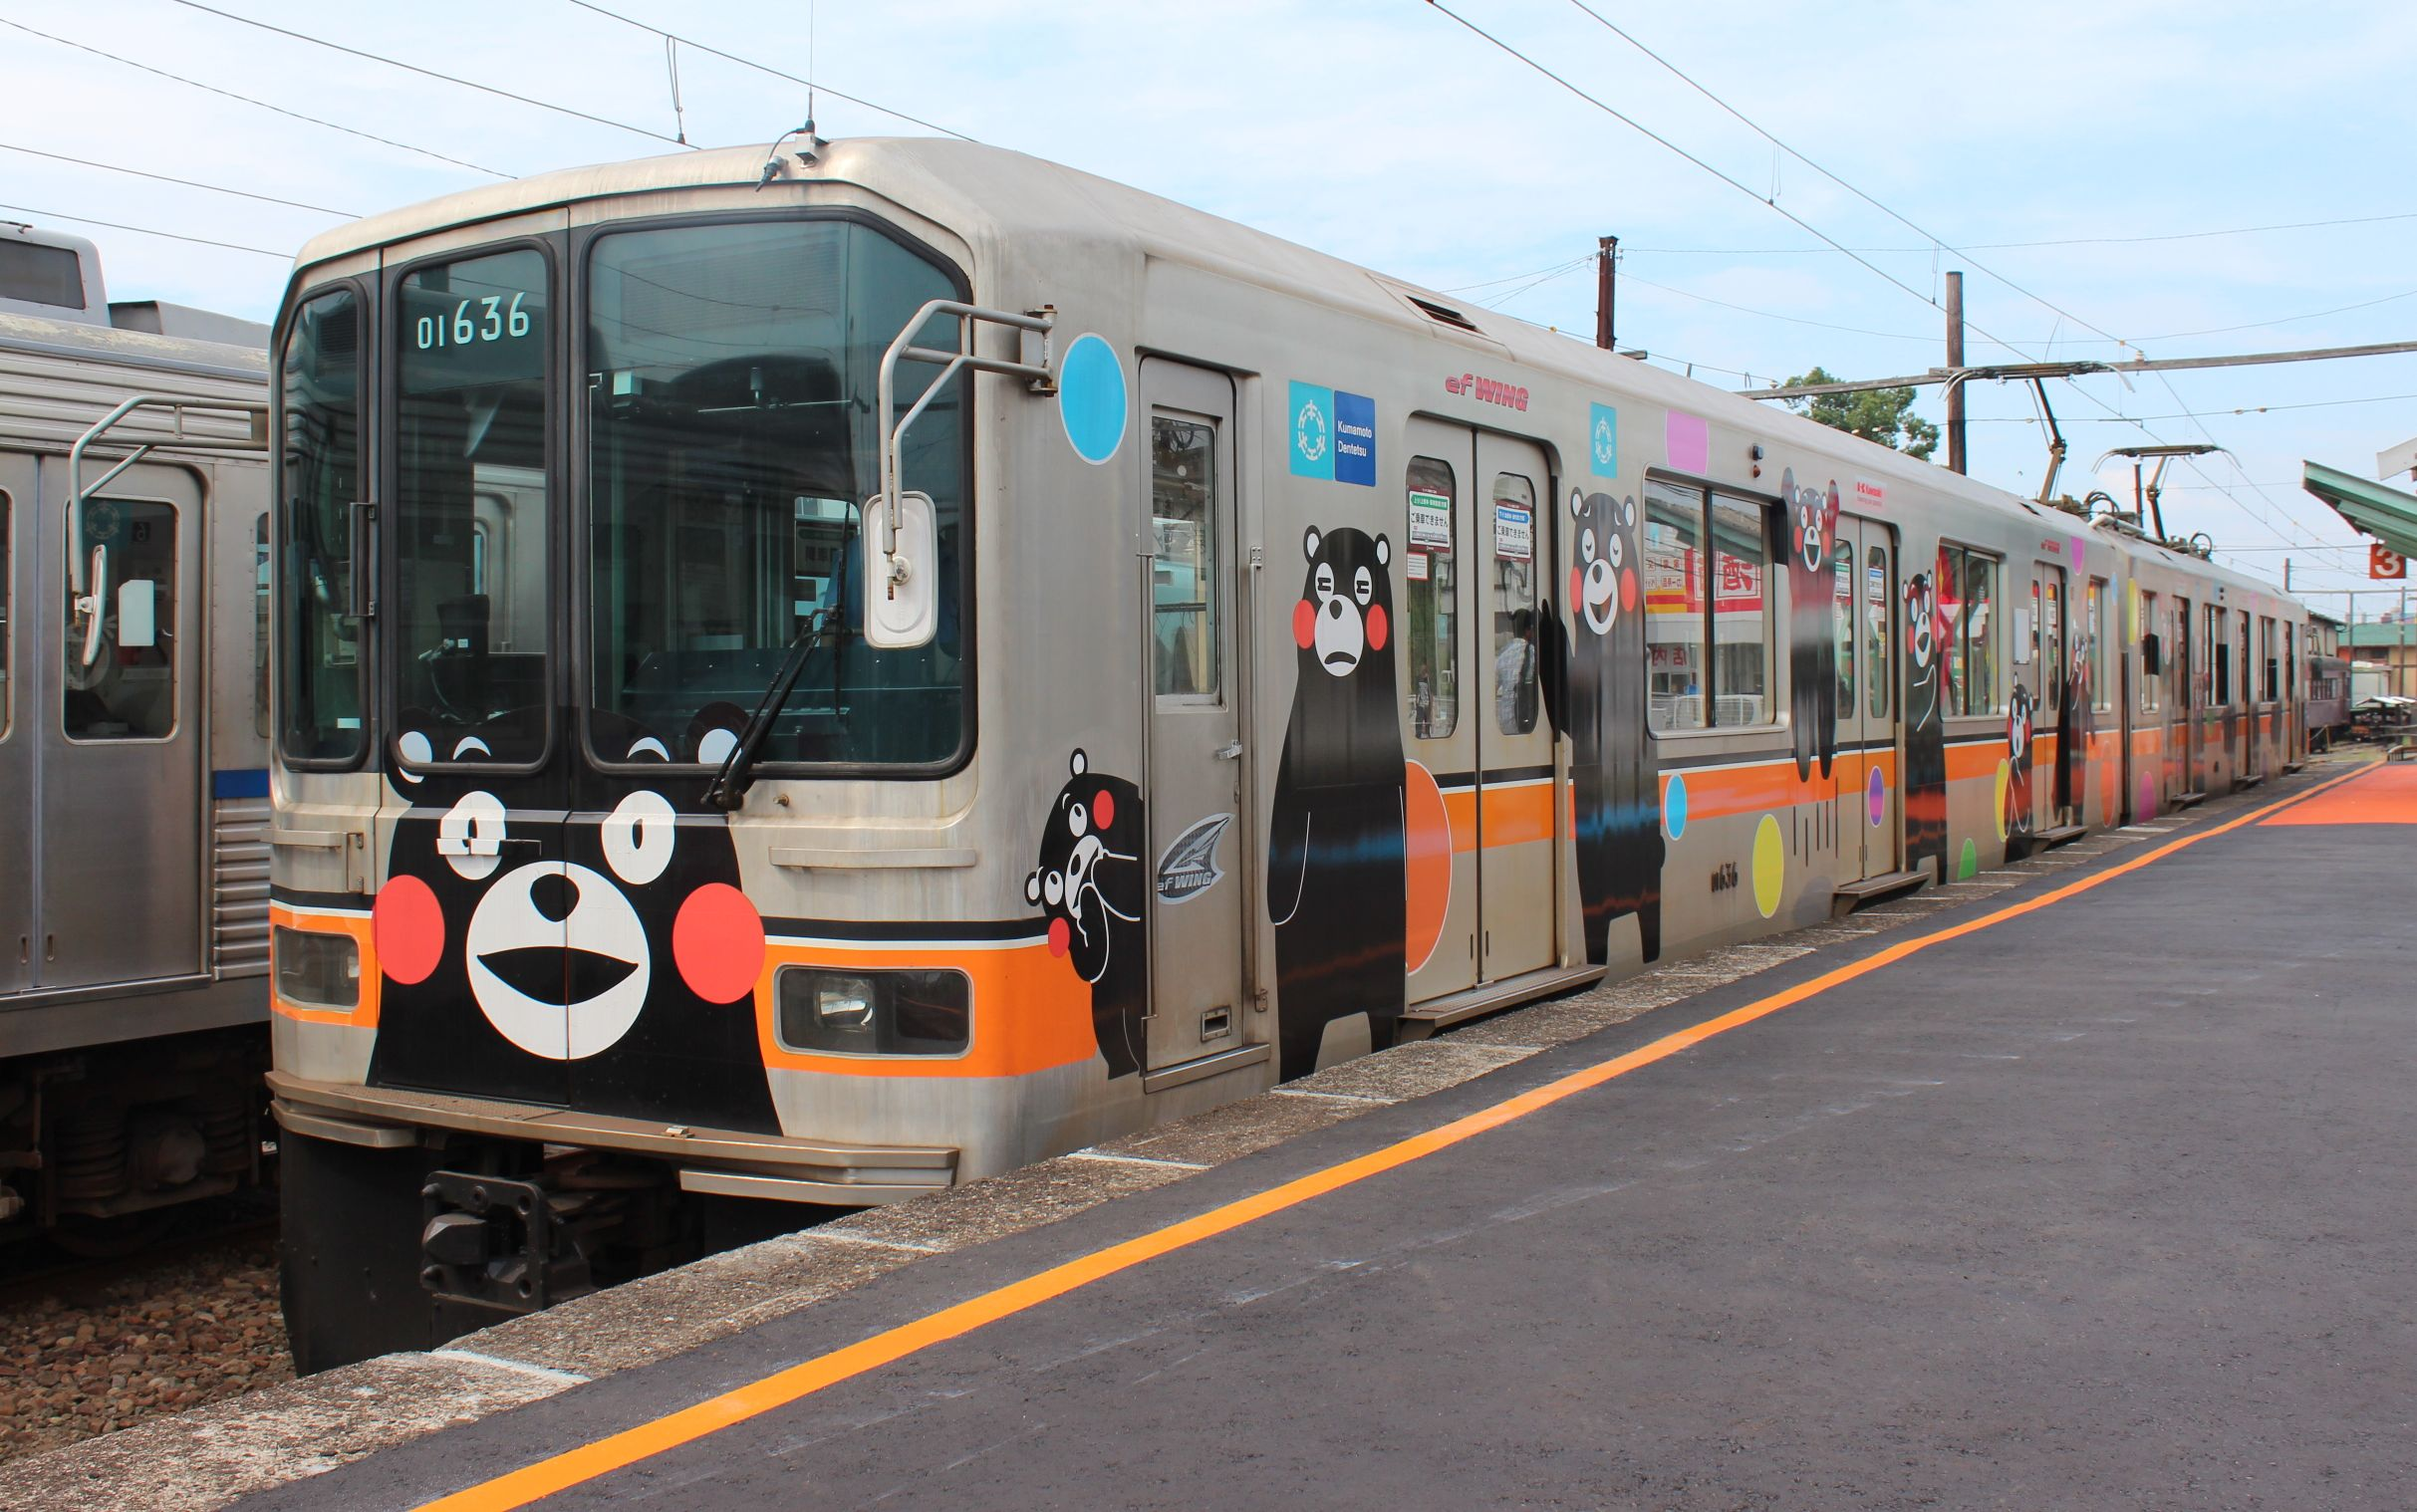 https://upload.wikimedia.org/wikipedia/commons/1/19/Kumamoto_Electric_Railway_01-636_Kitakumamoto-station20160925.jpg